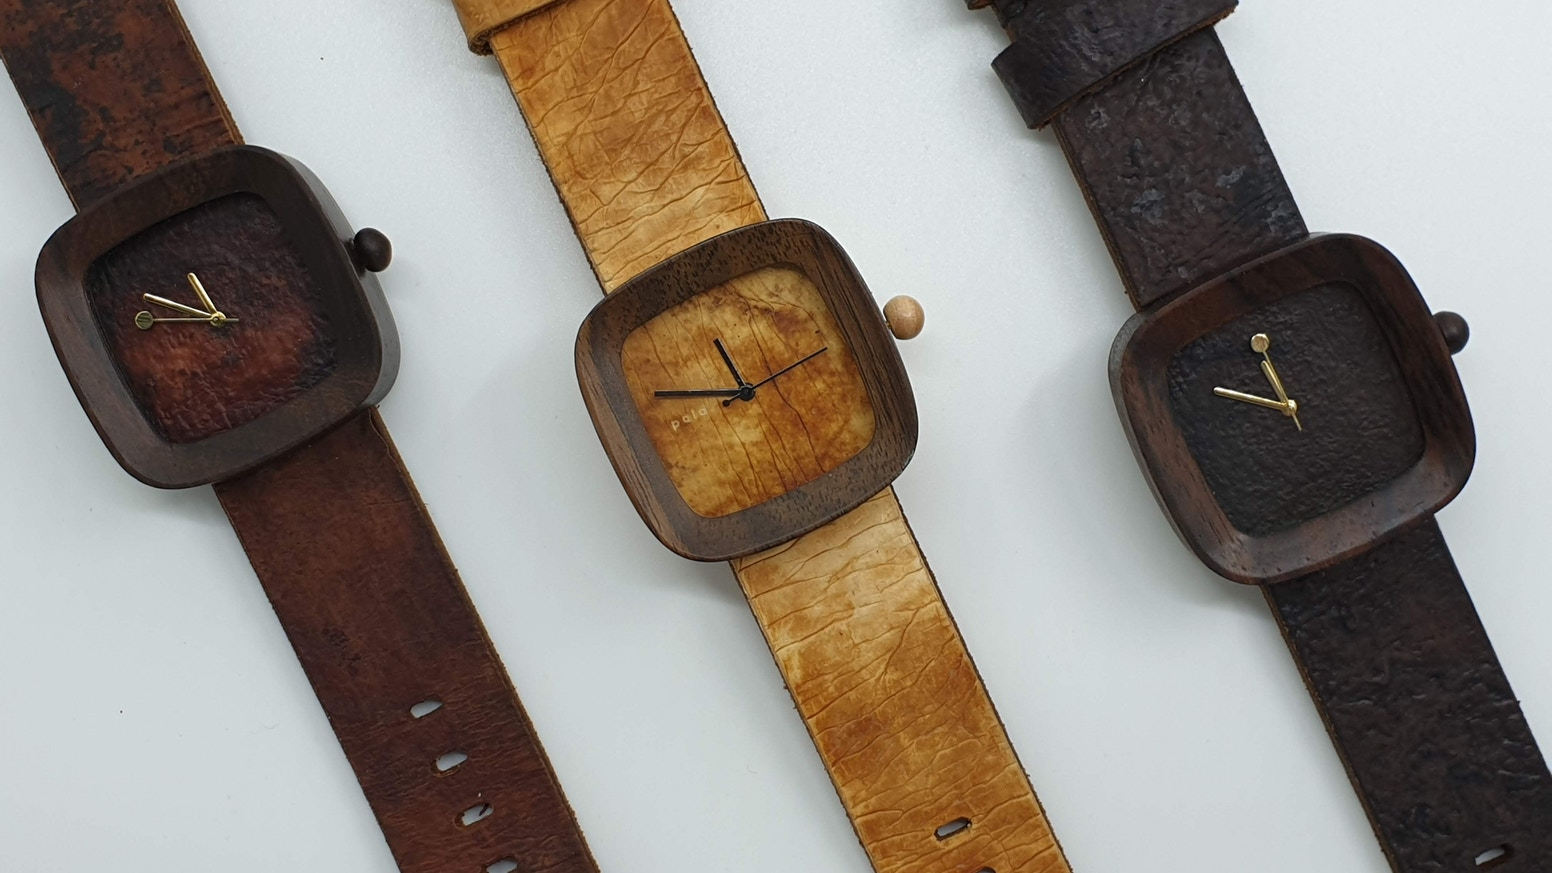 What Is Leather Made Of >> The World S First Mushroom Wooden Watch By Mycotech What